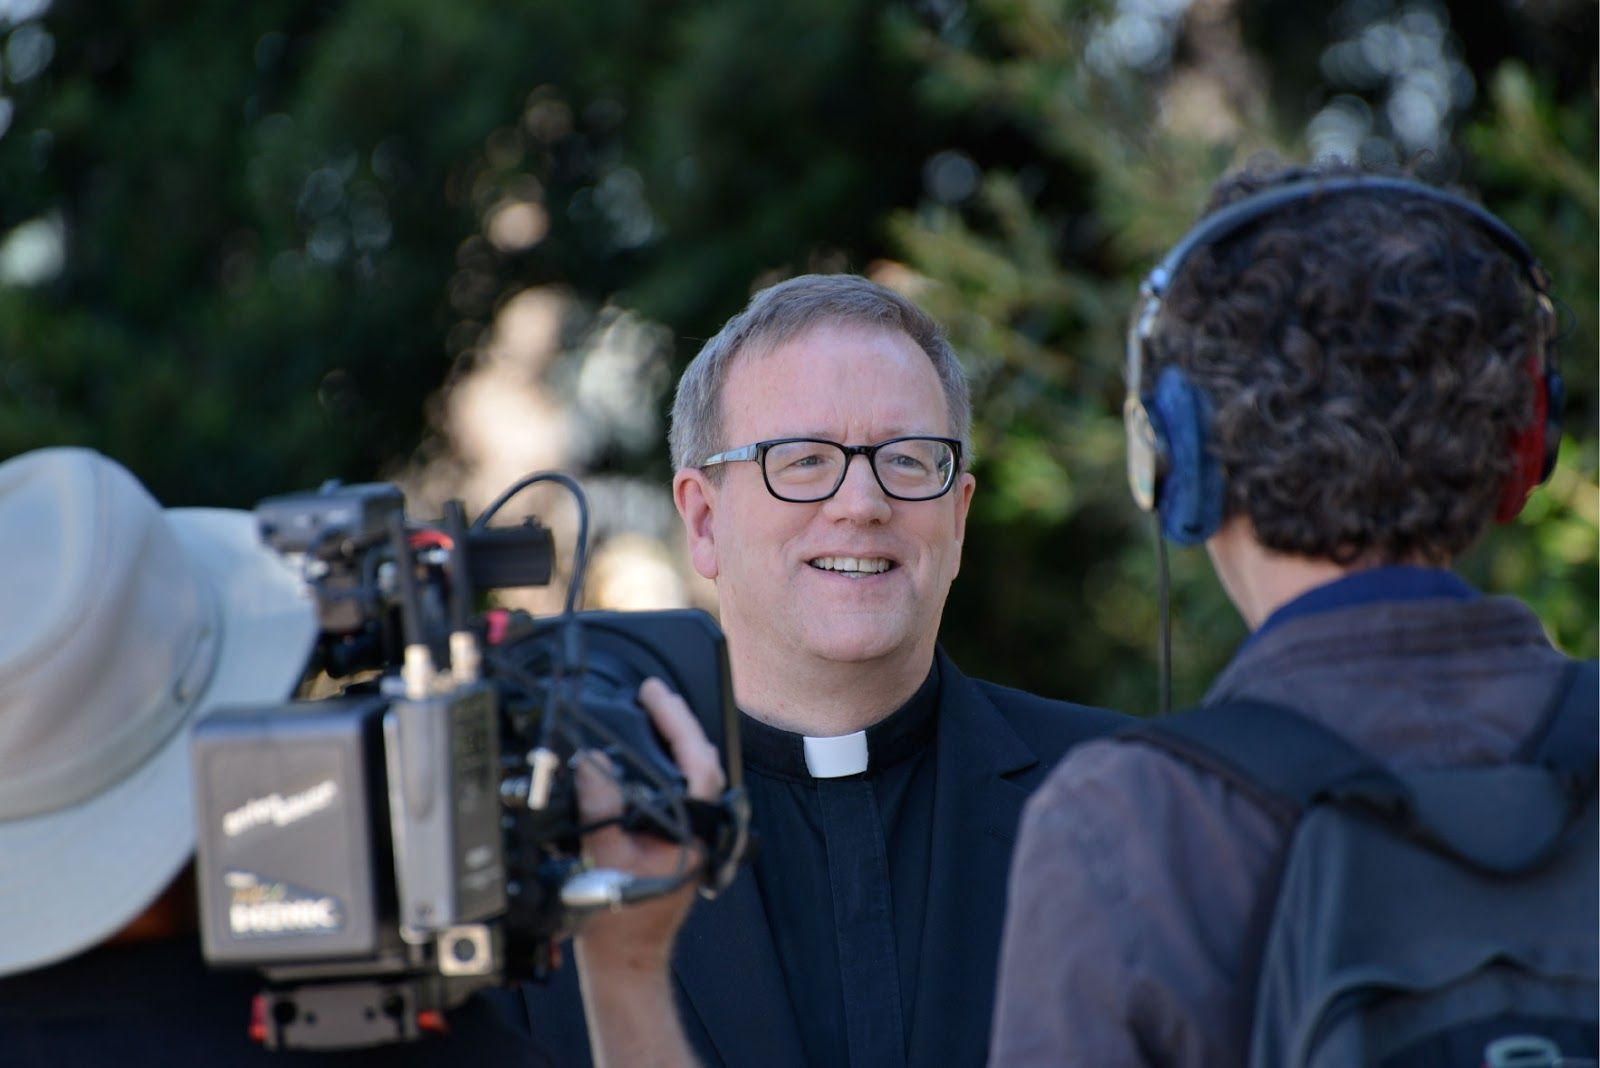 Via @roccopalmo | Bishop Barron Goes to Hollywood – Pope Names Mundelein Mogul One of 3 LA Auxiliaries